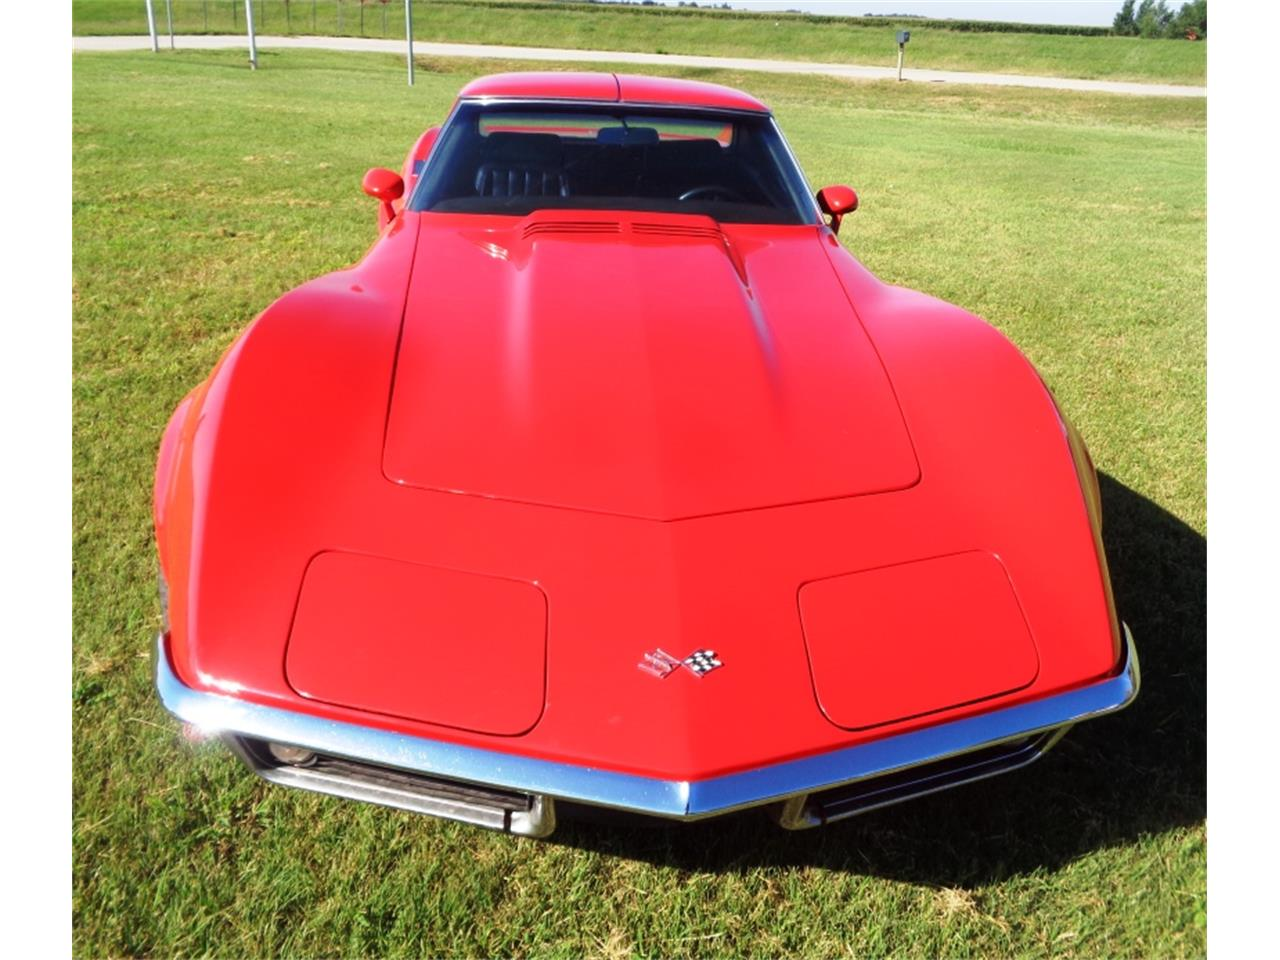 Large Picture of Classic 1969 Corvette located in Great Bend Kansas Auction Vehicle Offered by F & E Collector Auto Auctions - QV4G